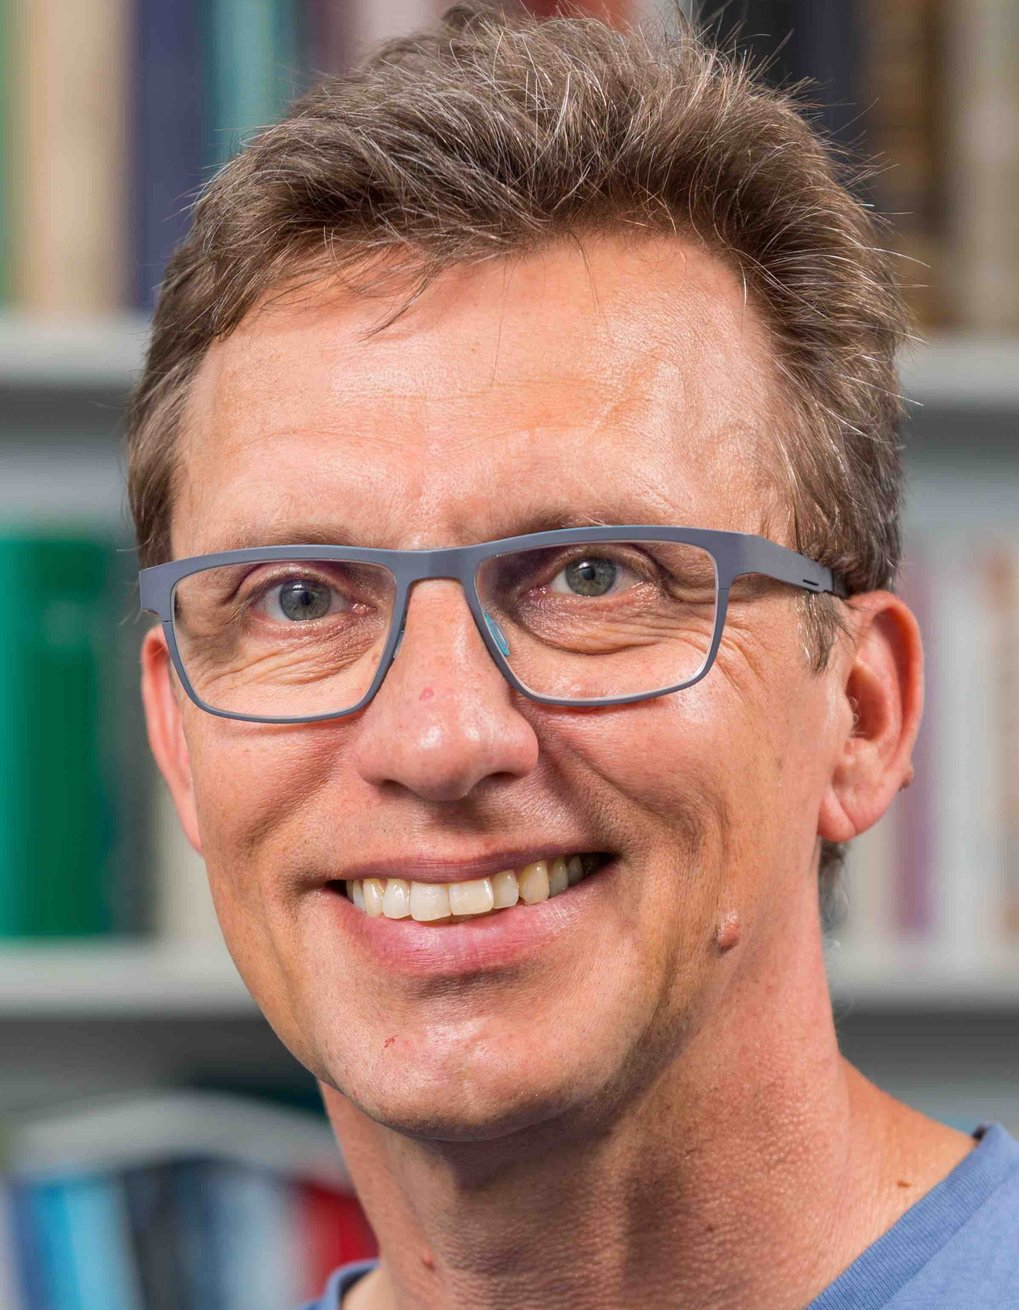 Detlef Weigel will receive the Barbara McClintock Prize 2019